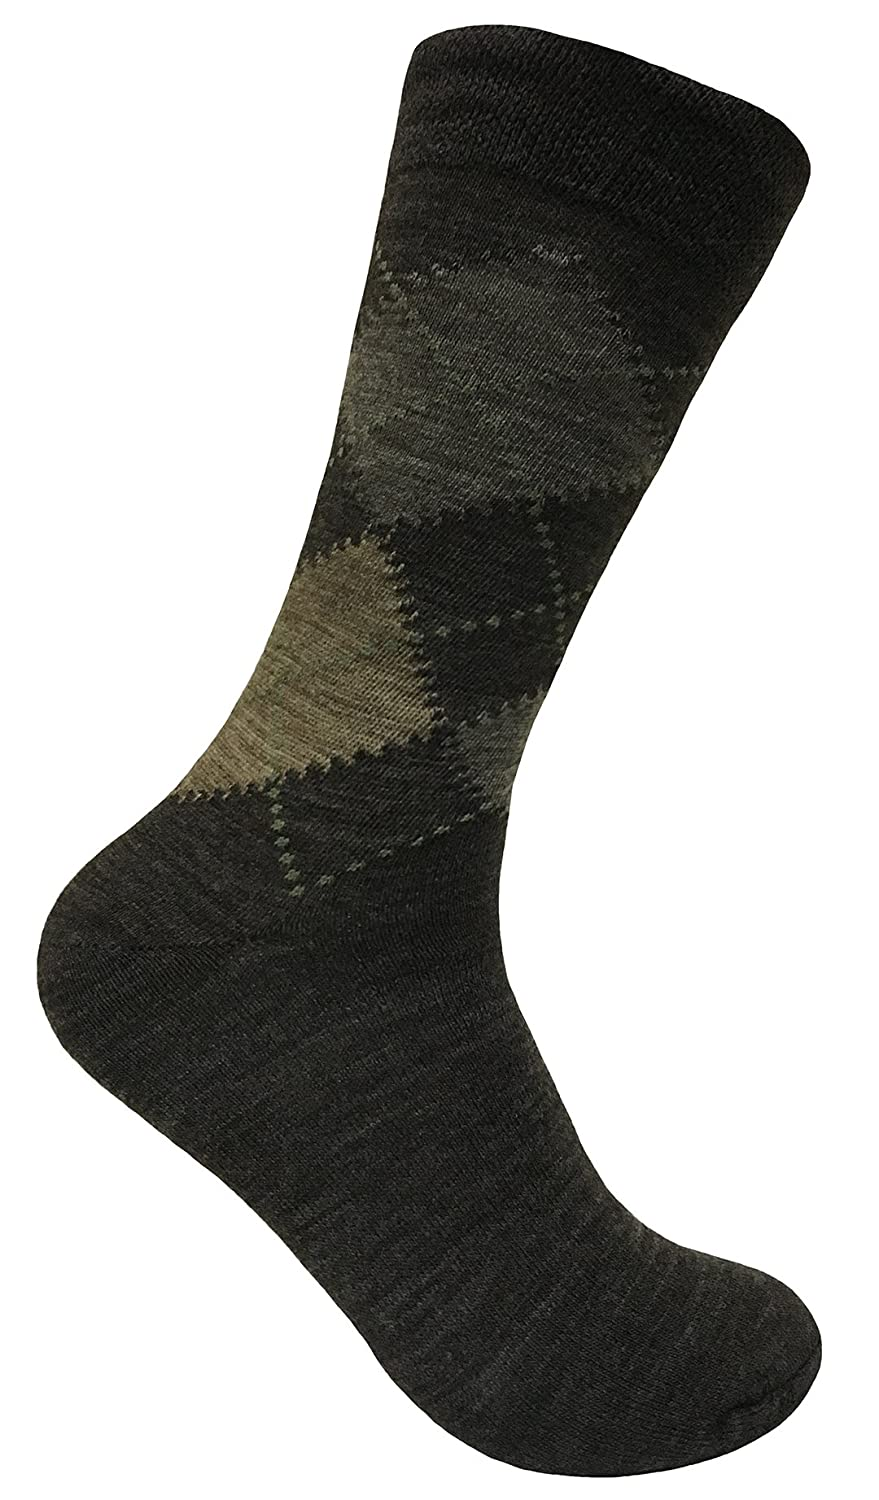 3 Pack Mens Thin Warm Lambs Wool Blend Argyle Patterned Hiking Crew Socks (7-12 US, SED Brown) at Amazon Mens Clothing store: